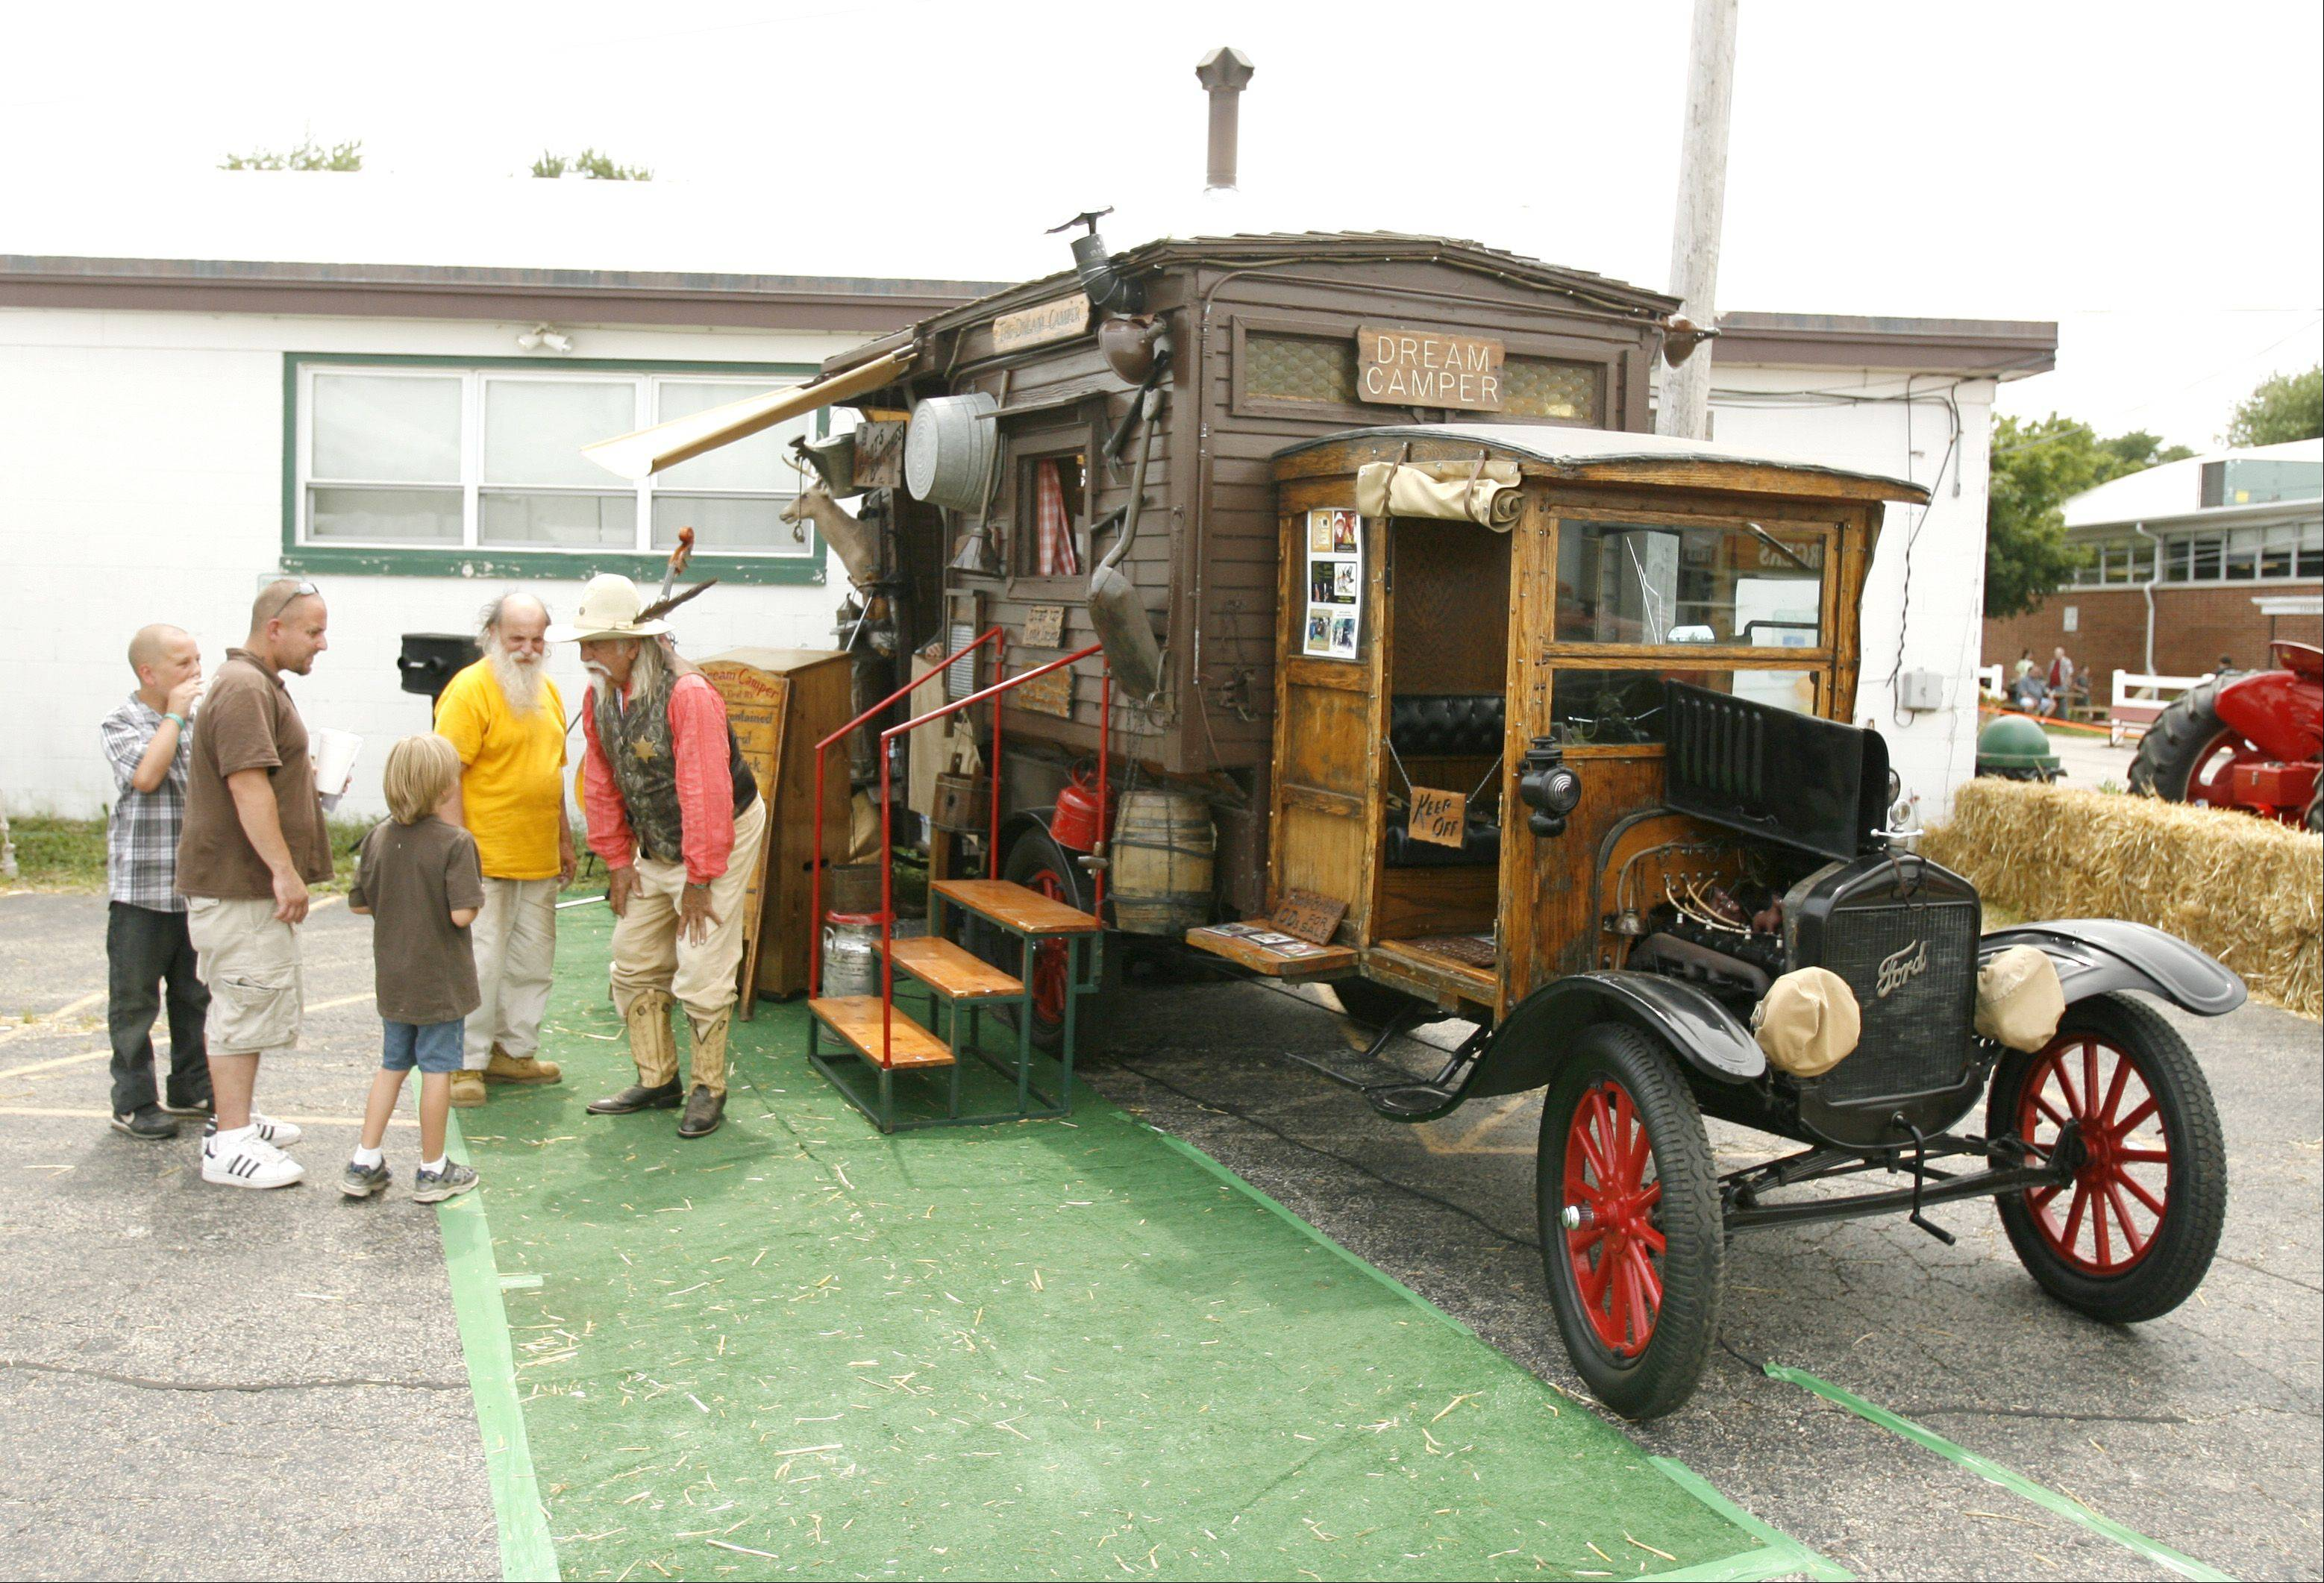 Deputy Boots talks about his dream camper, a 1923 Model T RV.